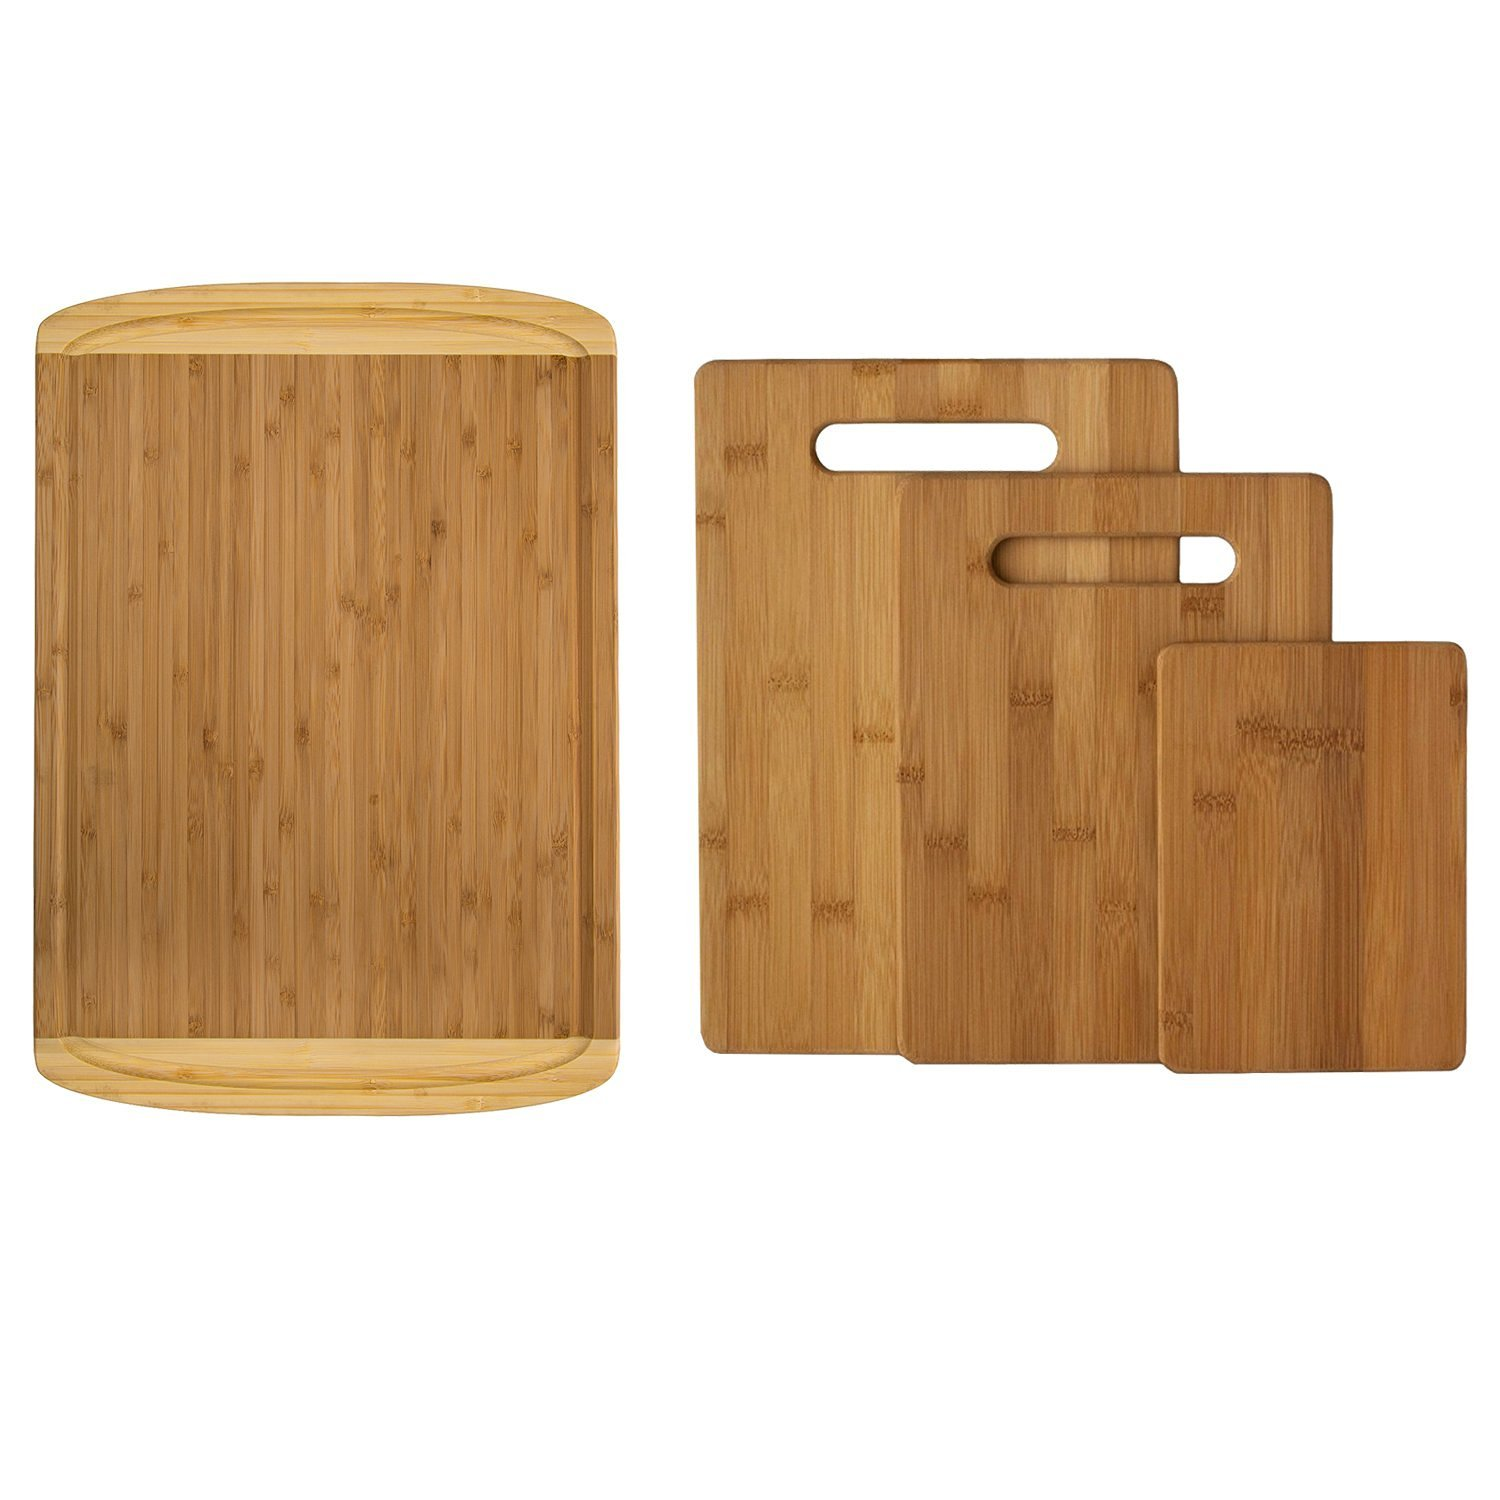 Premium Bamboo Cutting Board Set of 4 - Eco-Friendly Wood Chopping Boards with Juice Groove for Food Prep, Meat, Vegetables, Fruits, Crackers & Cheese - 100% Natural Bamboo Craftsmanship. by: Bambusi by Bambüsi (Image #3)